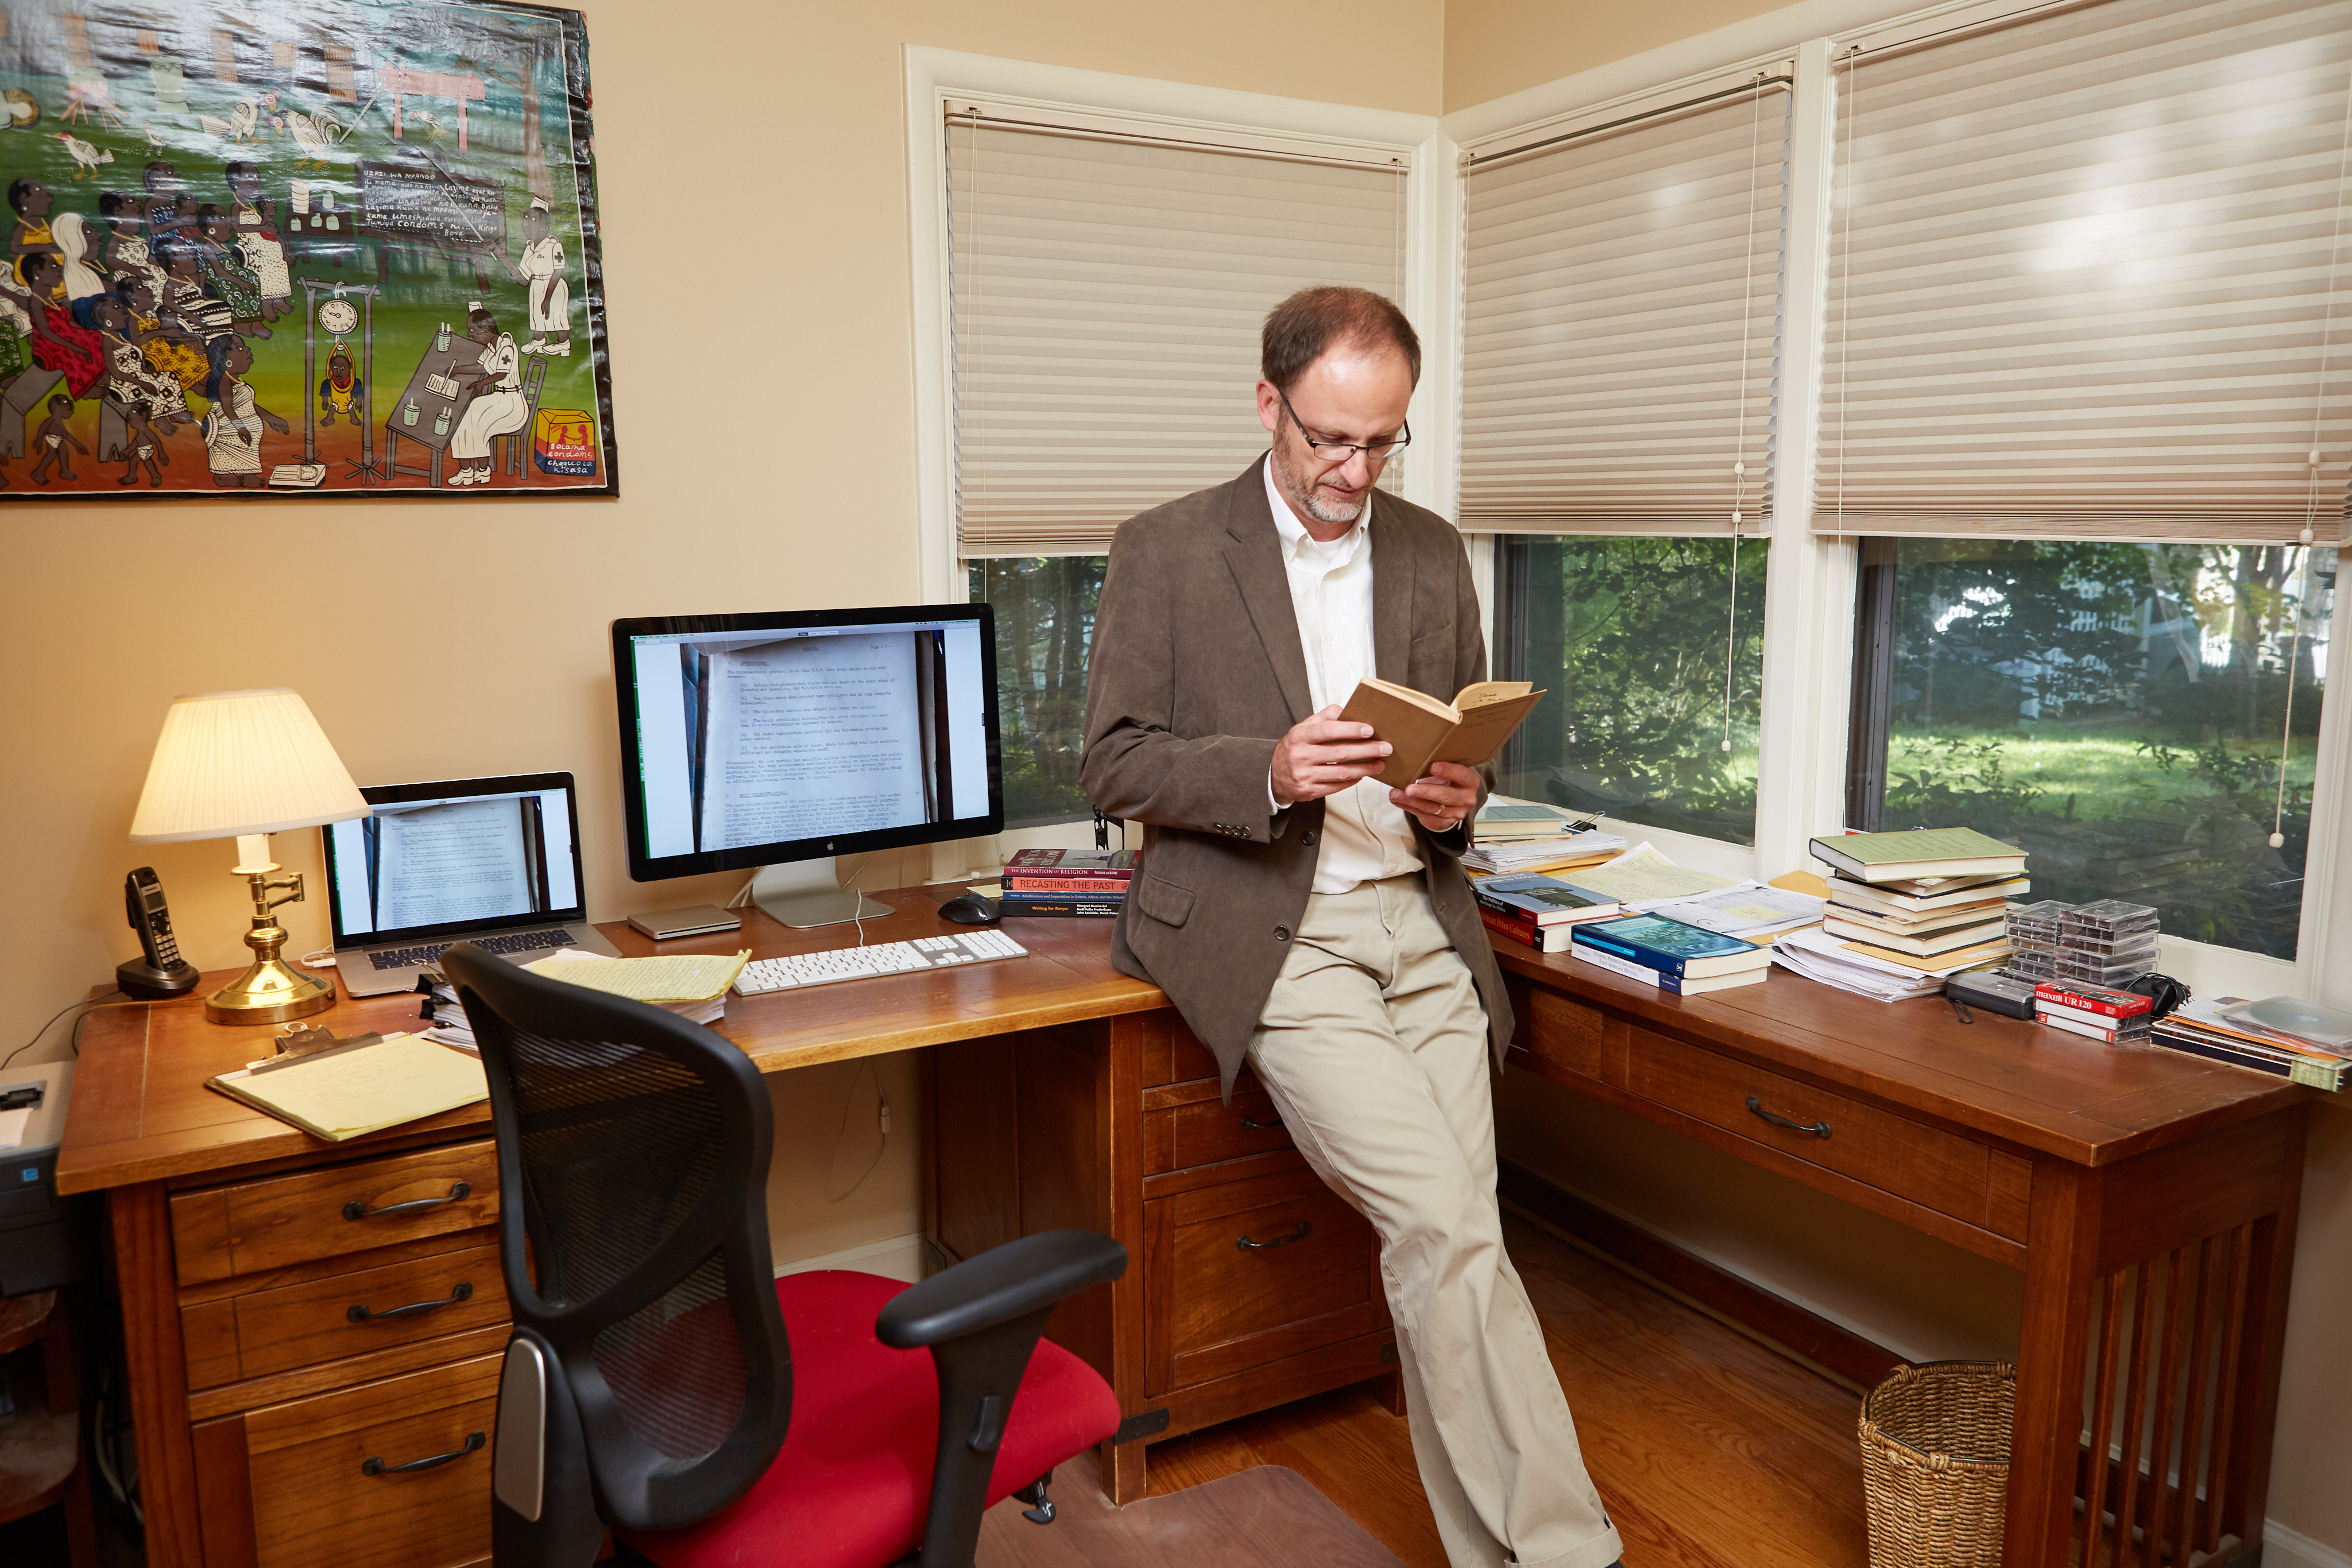 Derek Peterson in his office at the University of Michigan, 9/11/2017